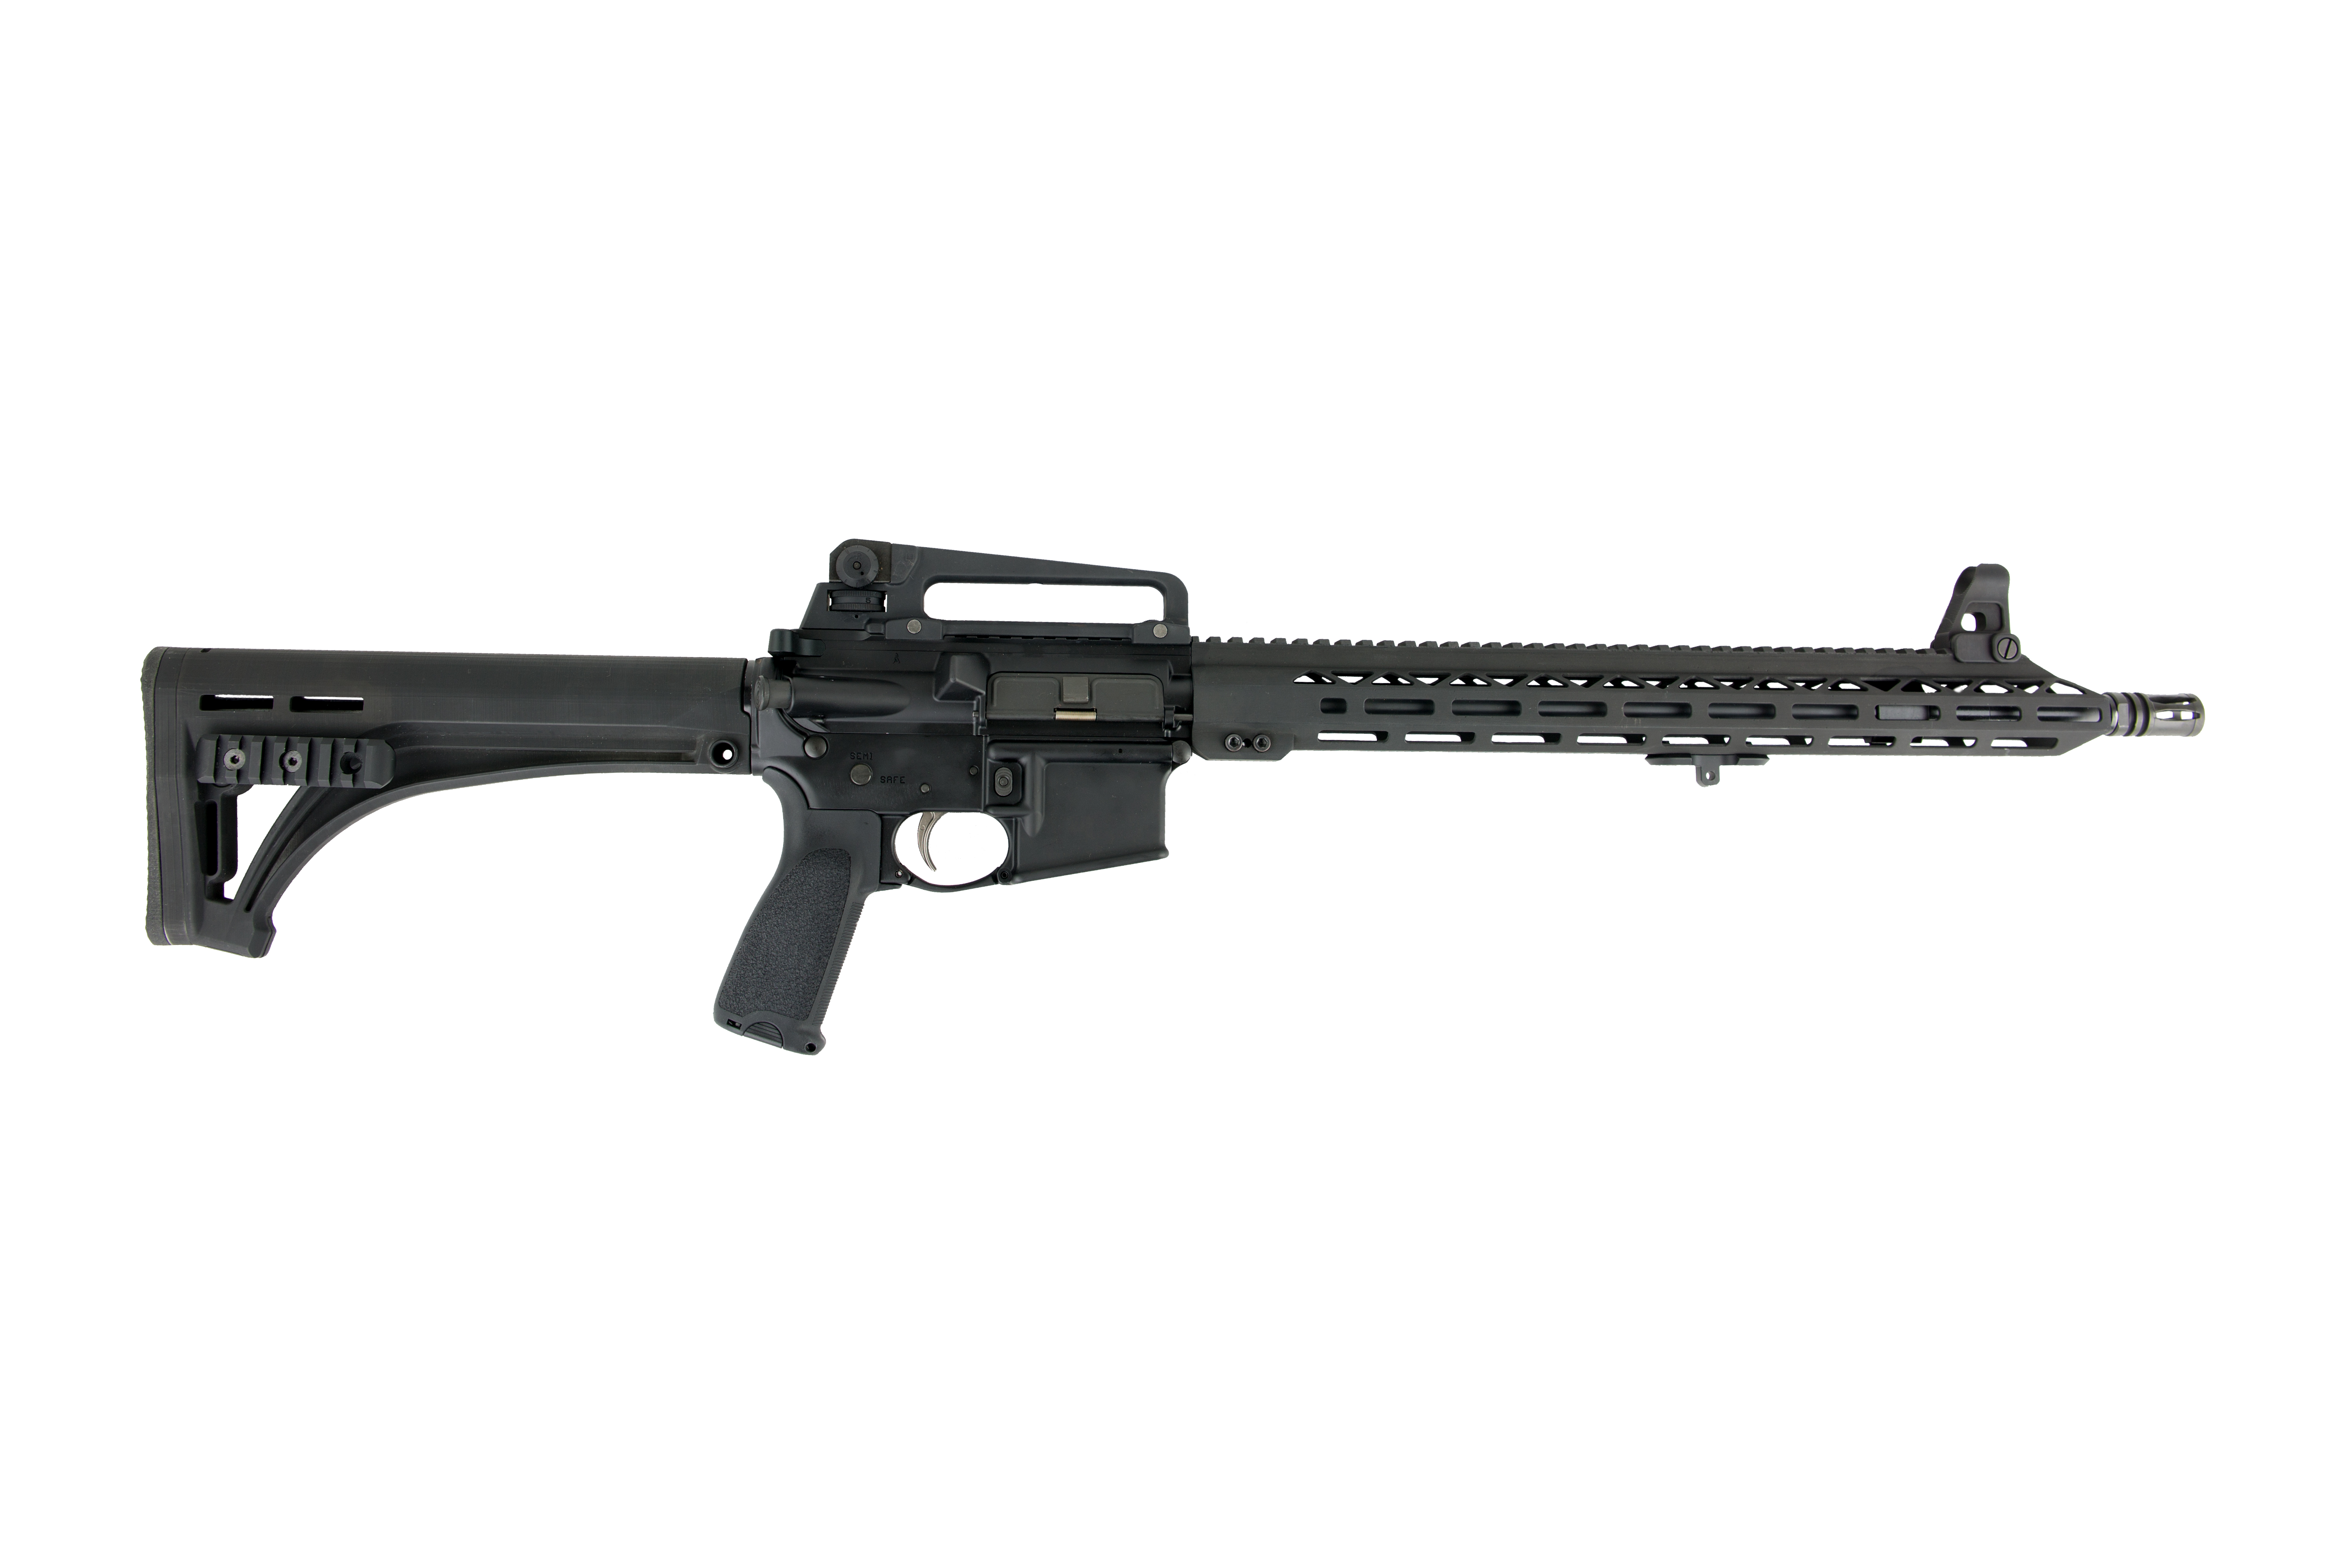 Mesatac™ Pyramid™ free float handguards for AR-15 rifles and carbines